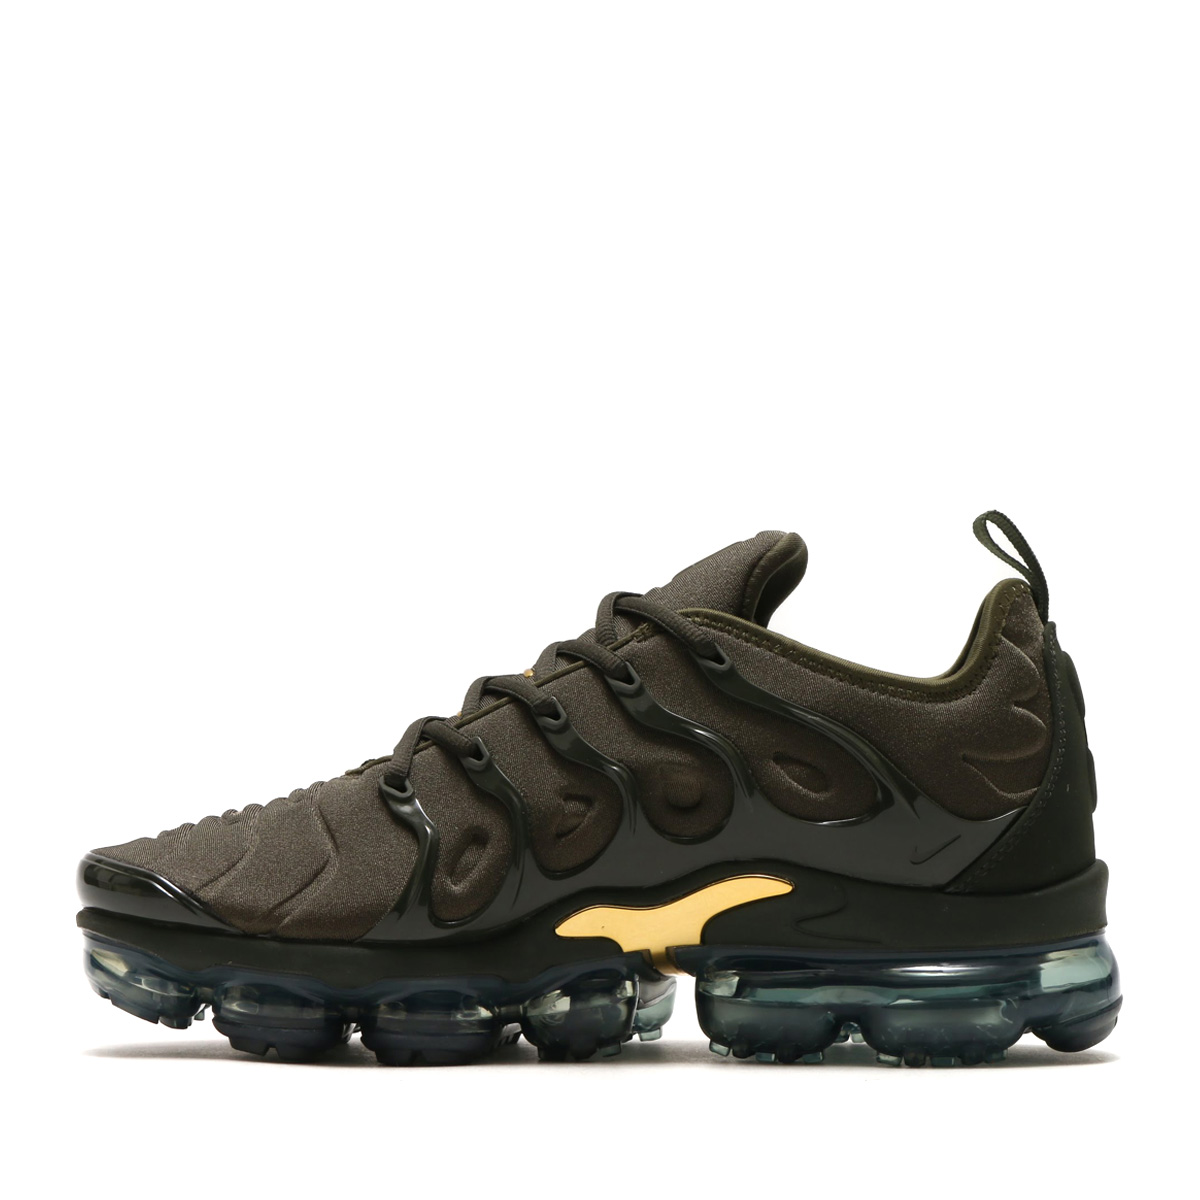 859d4365215 NIKE AIR VAPORMAX PLUS (Nike air vapor max plus) (CARGO KHAKI SEQUOIA-CLAY  GREEN) 18SP-S